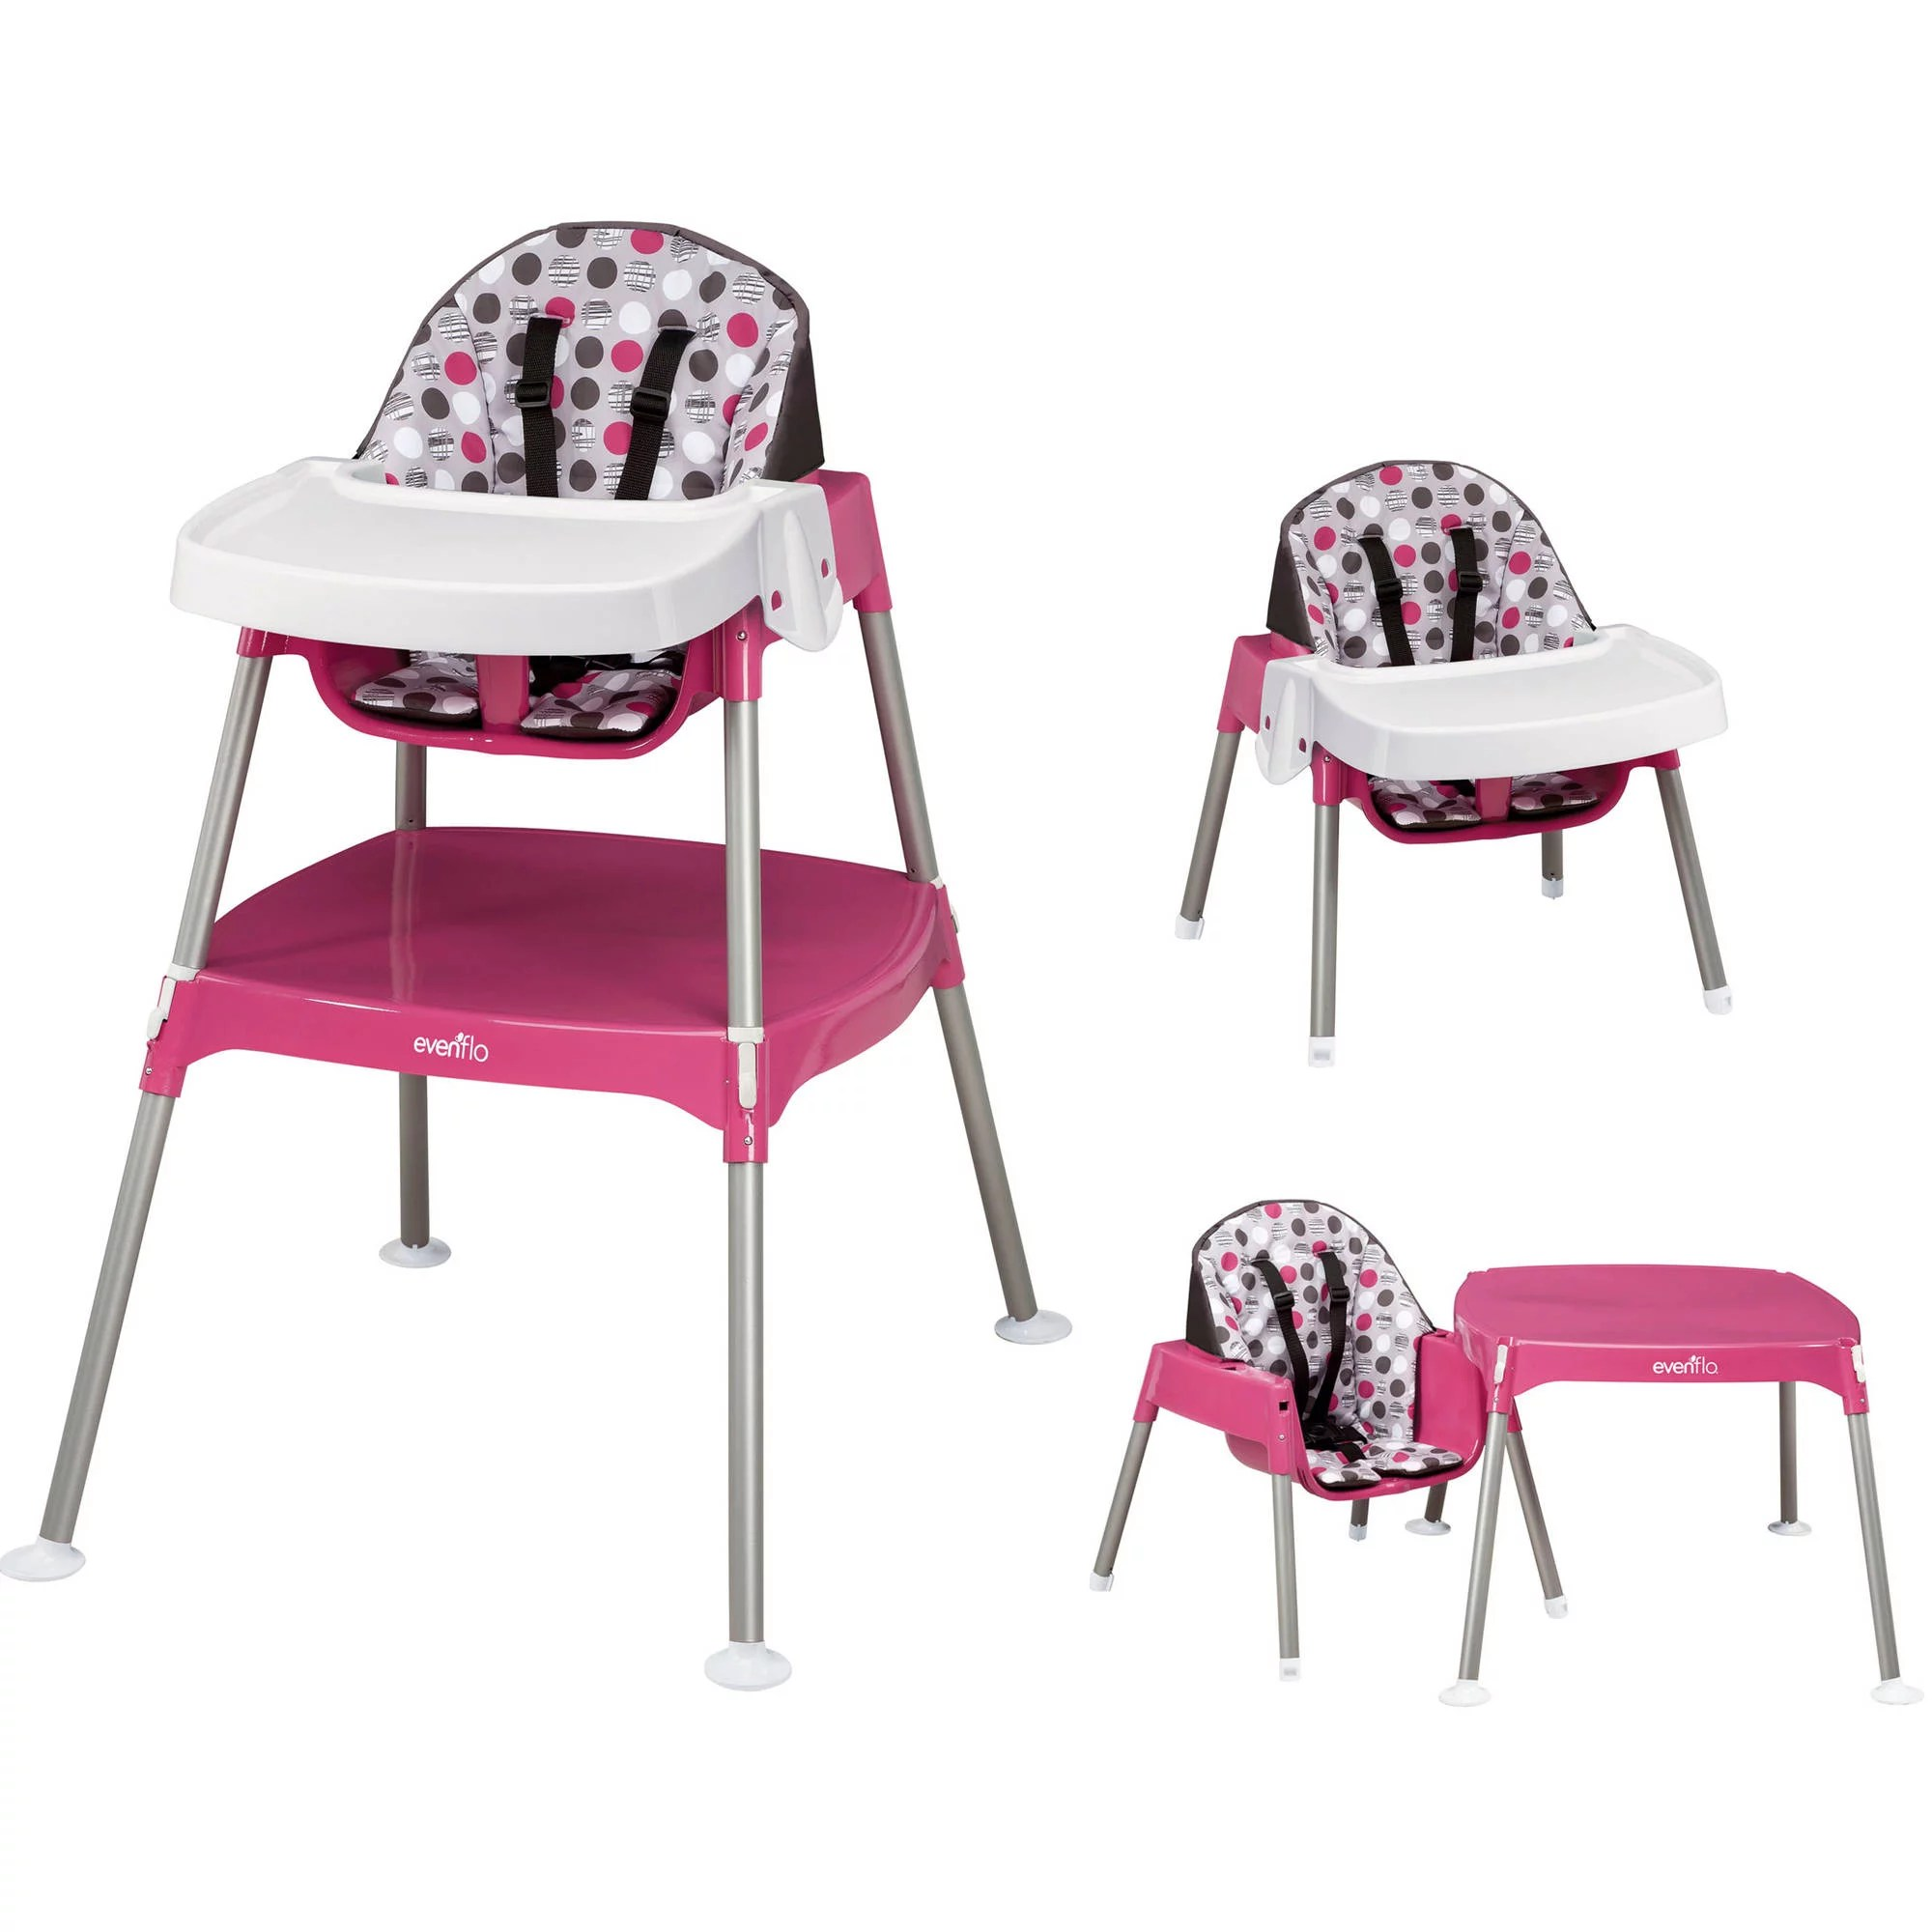 baby chairs at walmart steel chair gold evenflo 3 in 1 convertible high dottie rose com